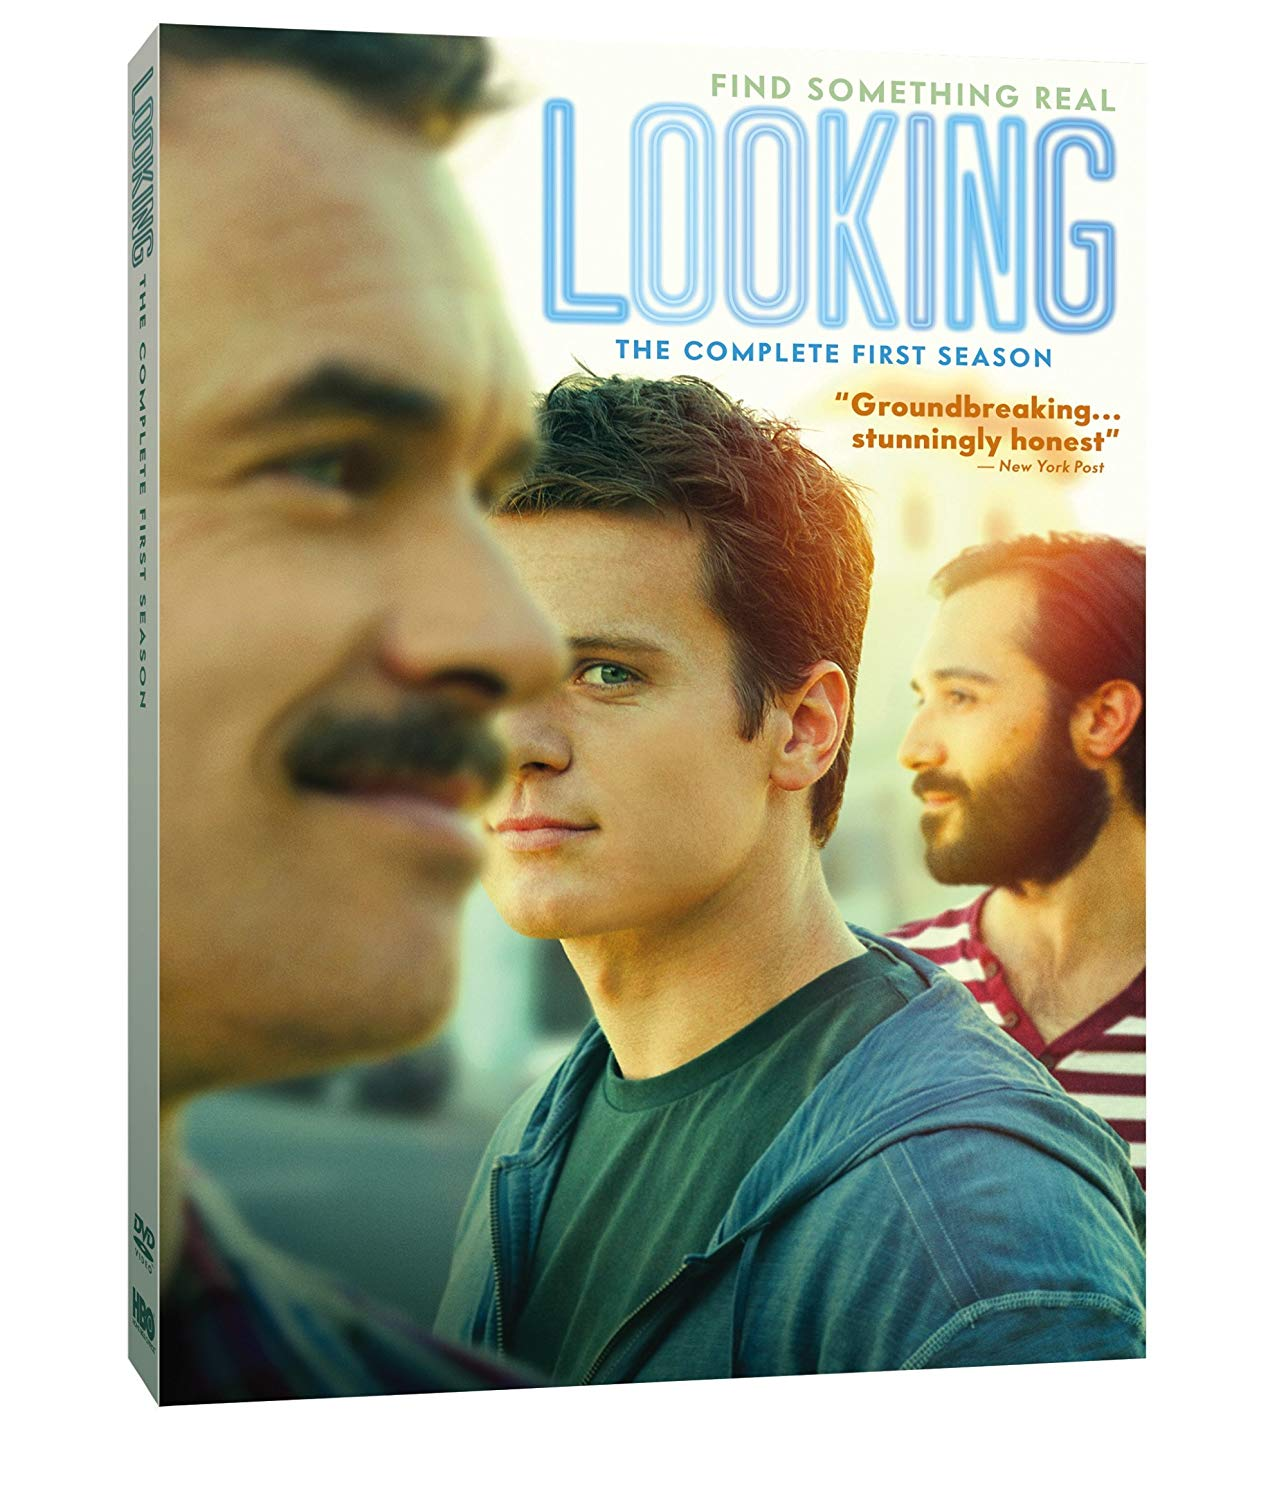 Amazon.com: Looking: The Complete First Season: Various: Movies & TV